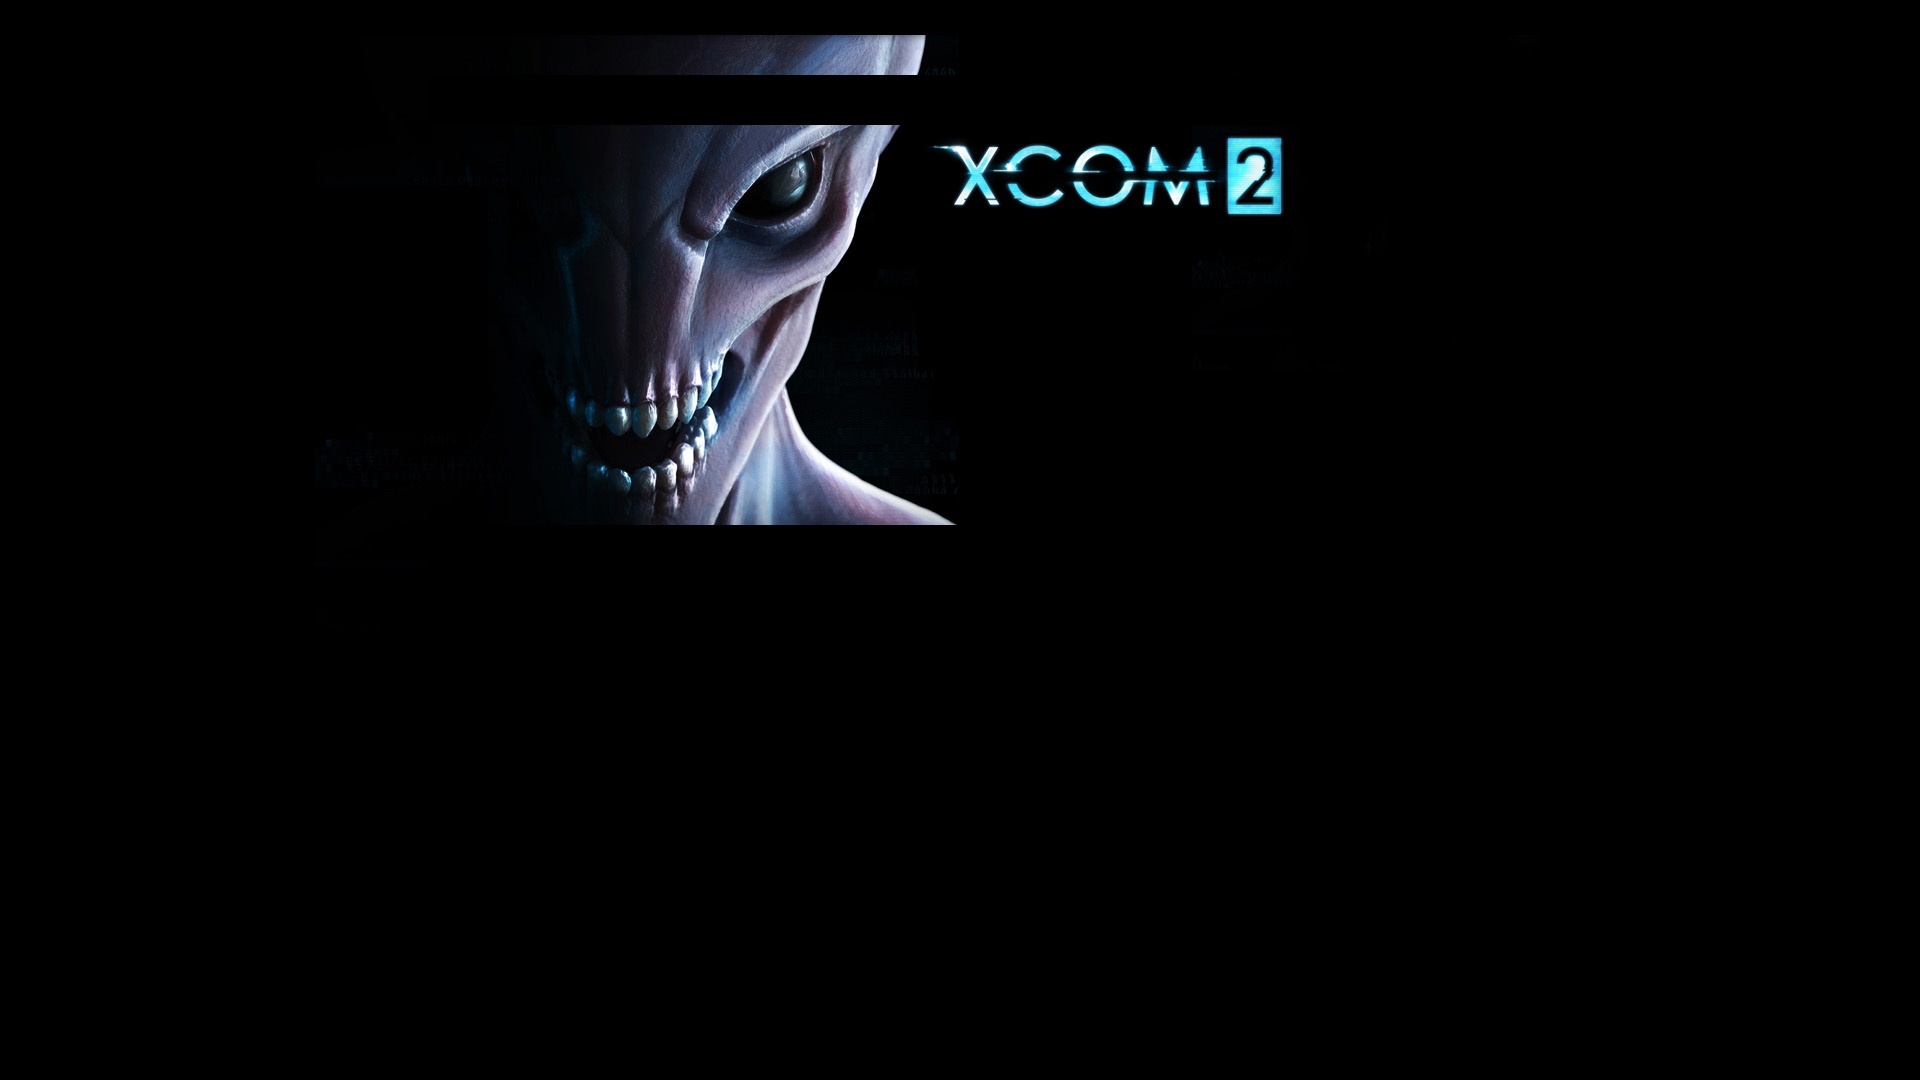 XCOM 2 [PC] video game